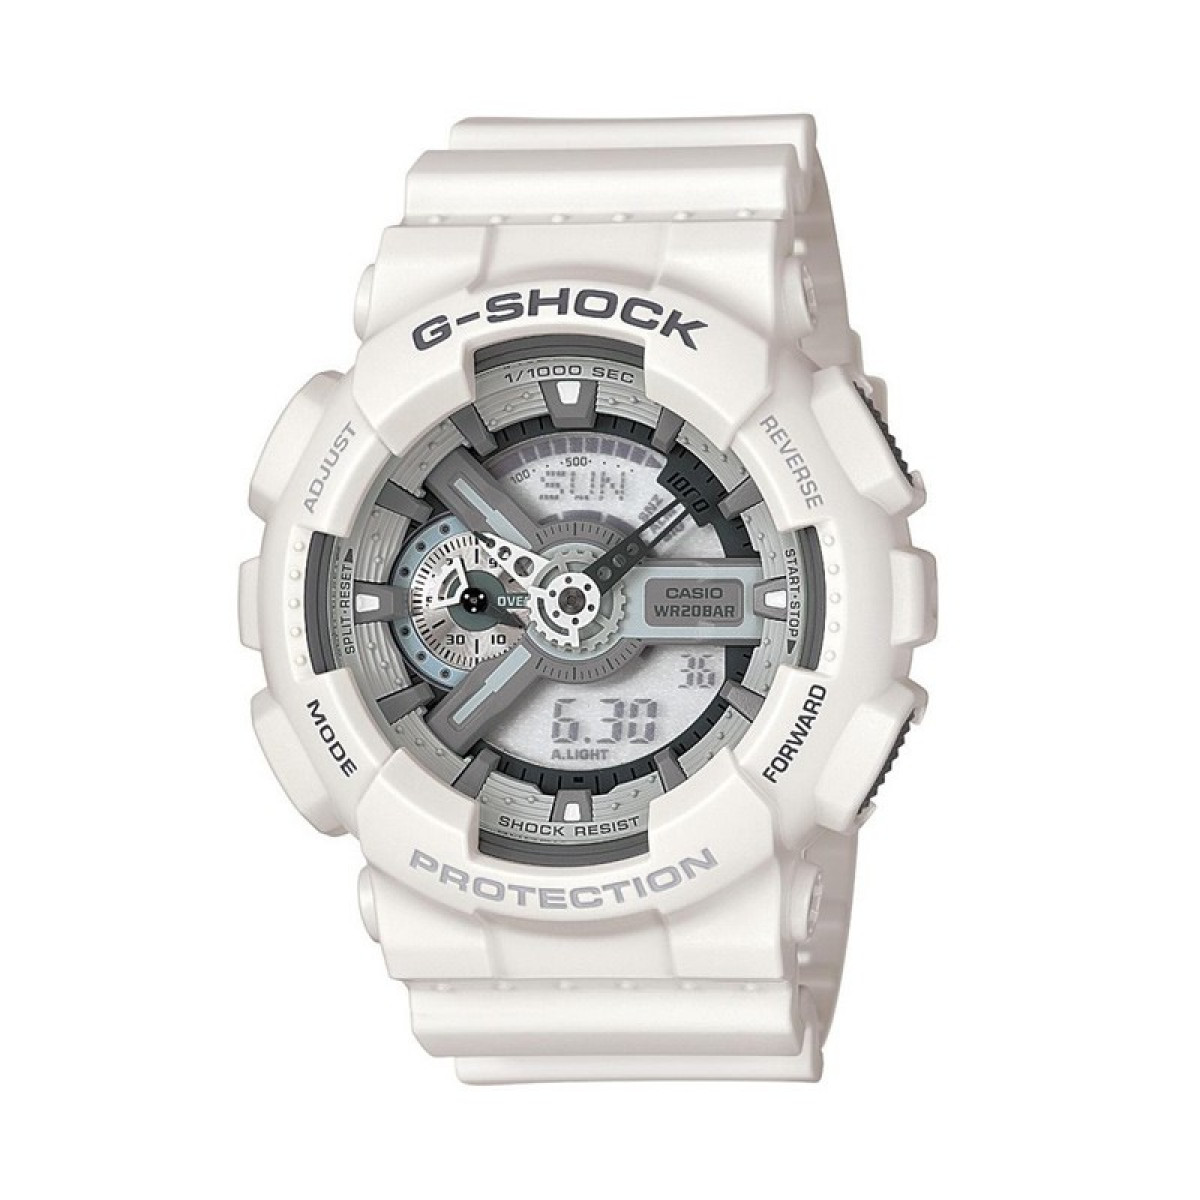 Часовник Casio G-Shock GA-110C-7AER